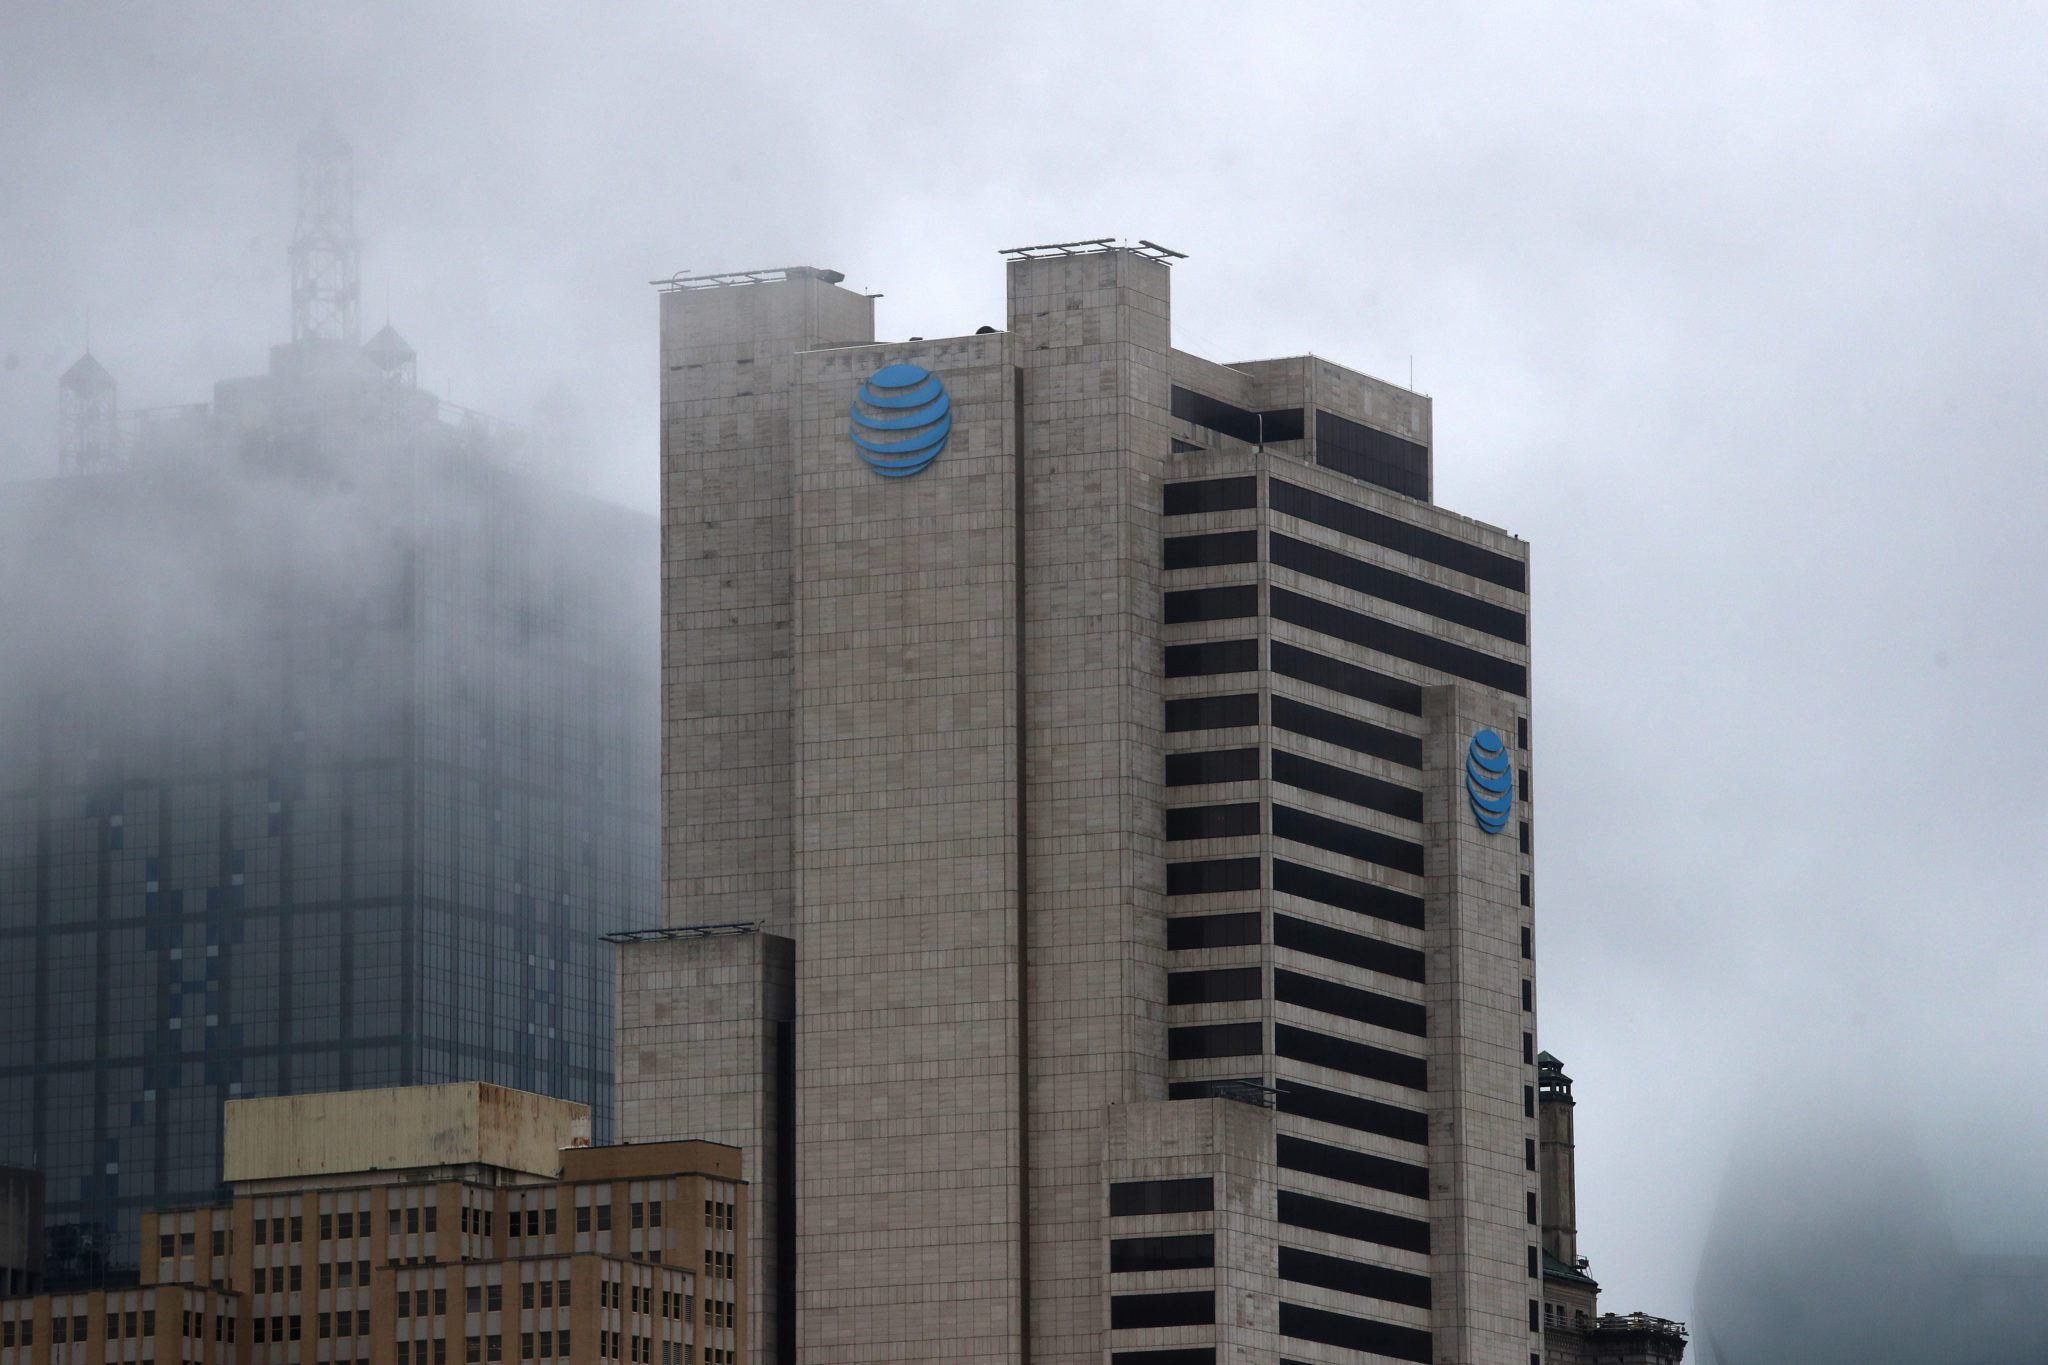 DALLAS, TEXAS - MARCH 13:  An exterior view of AT&T corporate headquarters on March 13, 2020 in Dallas, Texas.  AT&T is allowing employees to work remotely from home if they have the ability to do so, as a safety measure due to COVID-19. (Photo by Ronald Martinez/Getty Images)